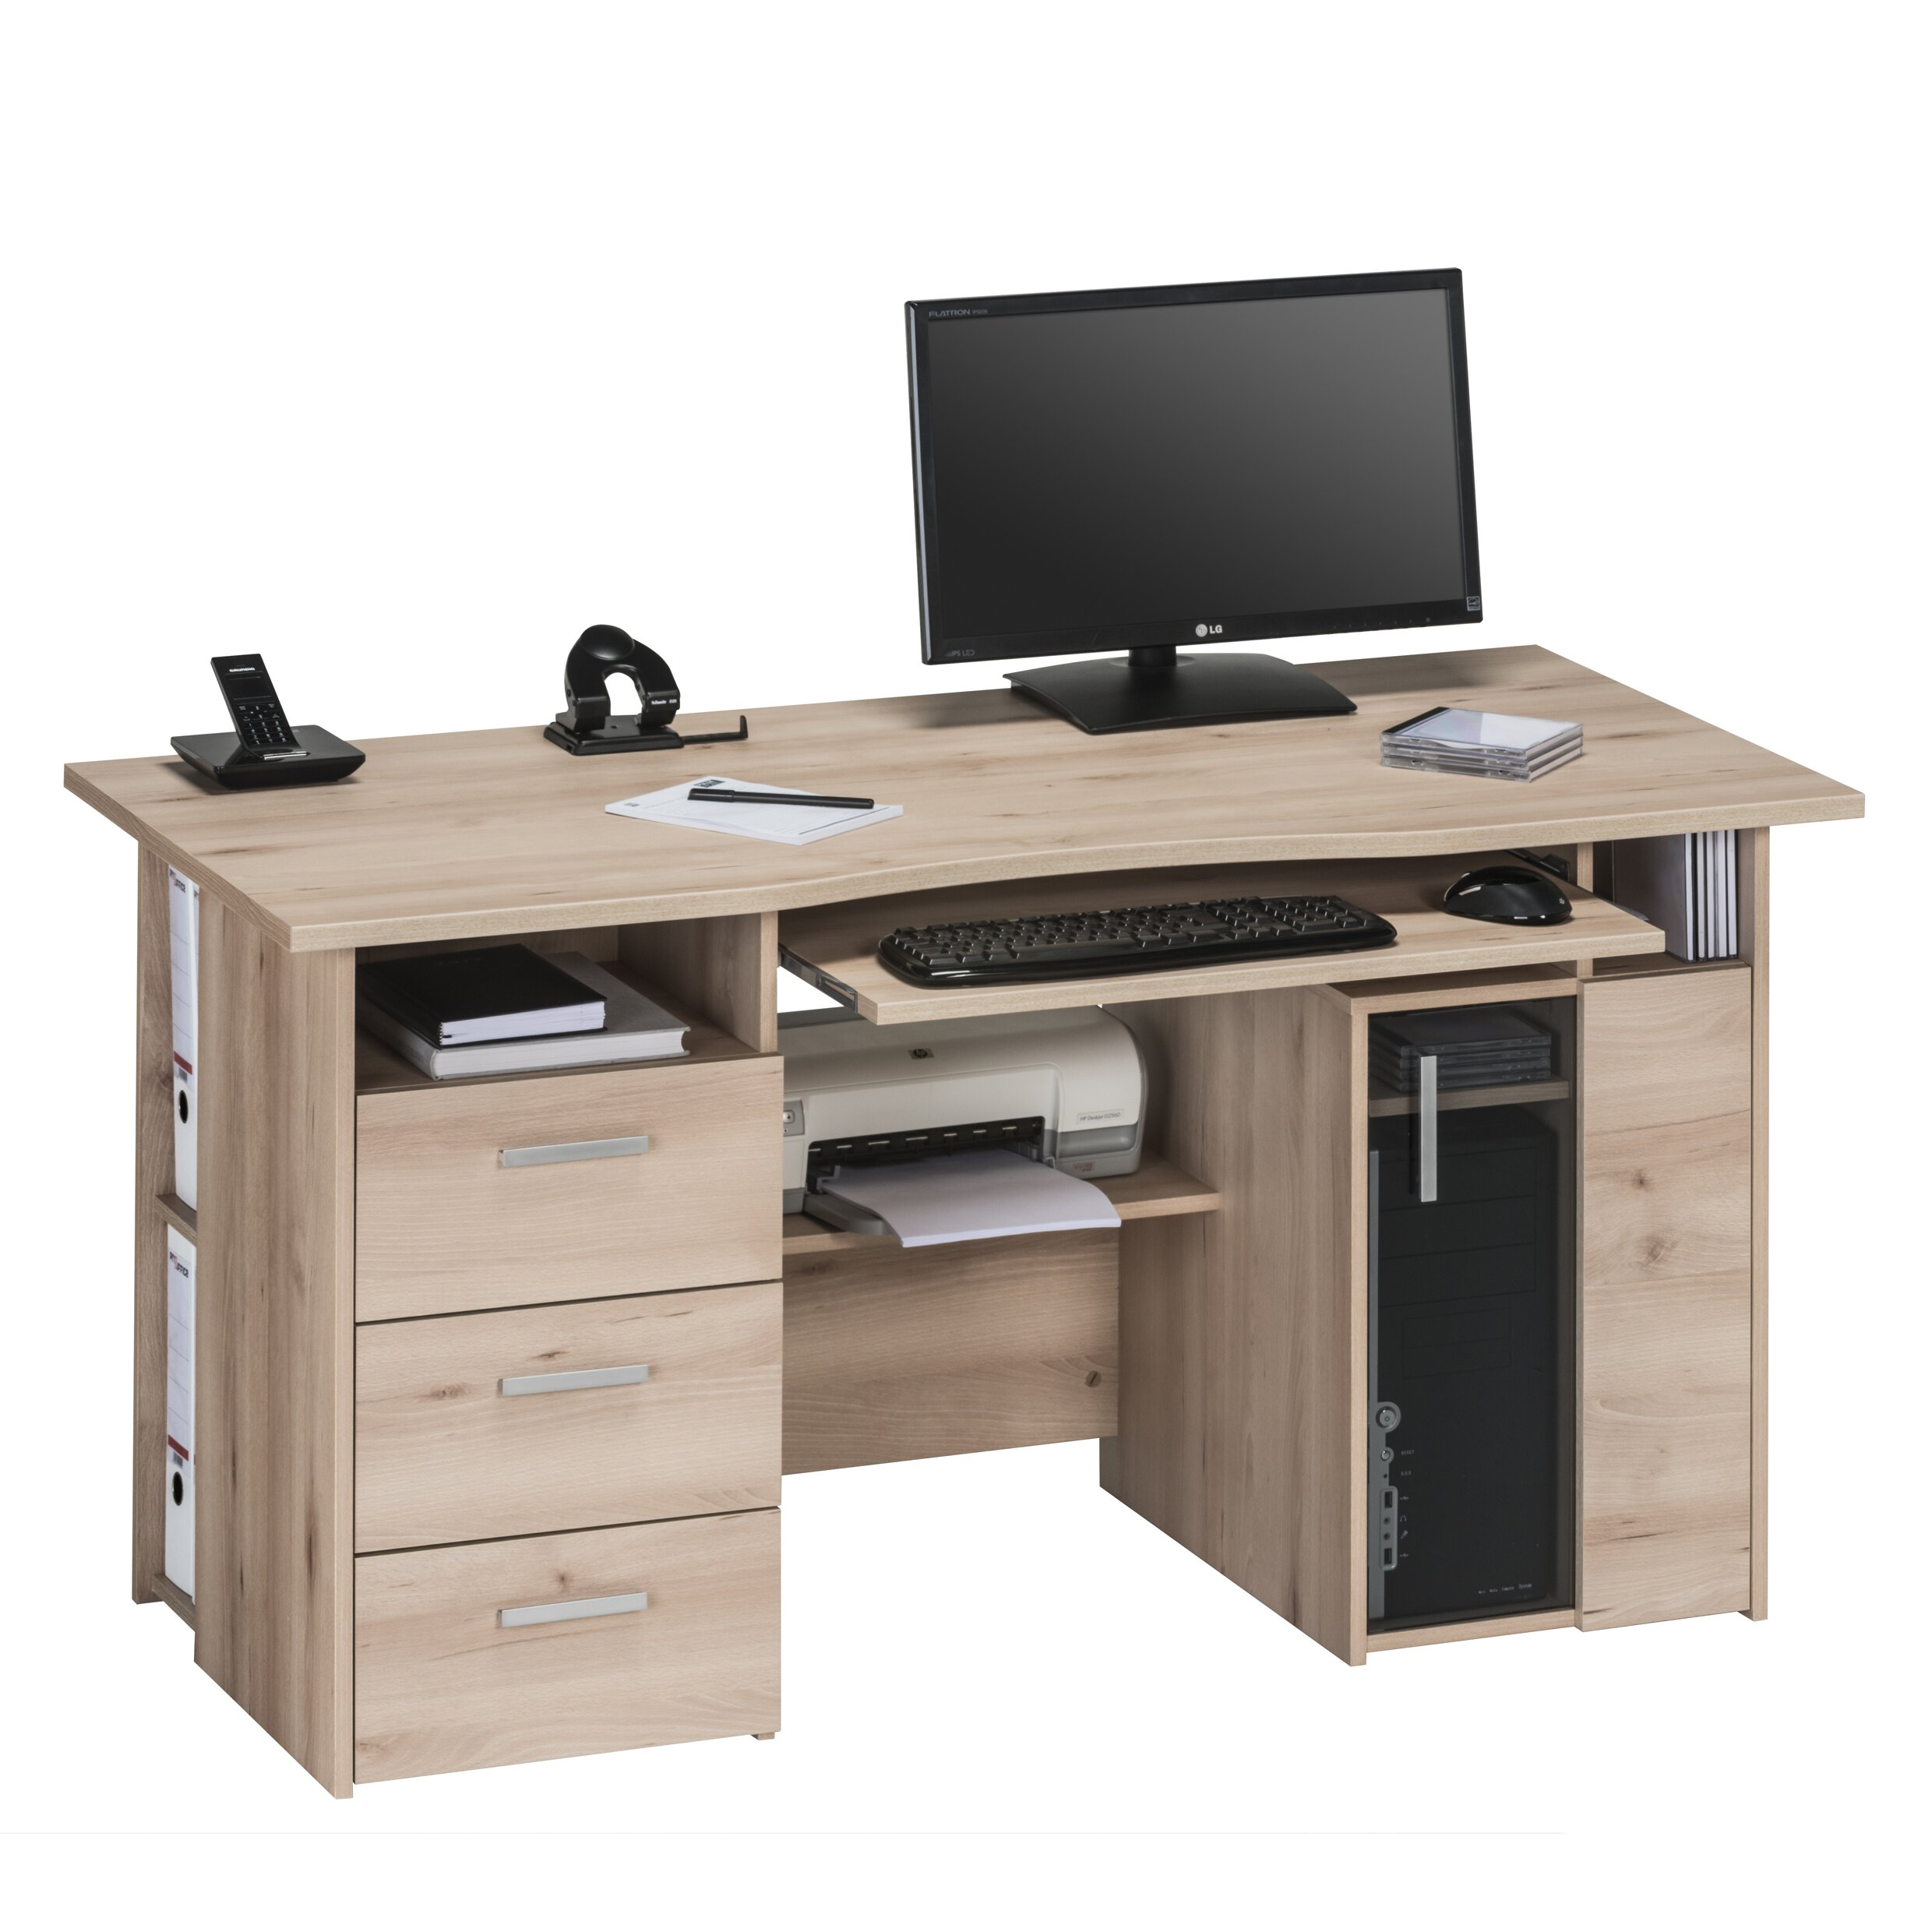 maja m bel maja computer desk reviews wayfair uk. Black Bedroom Furniture Sets. Home Design Ideas